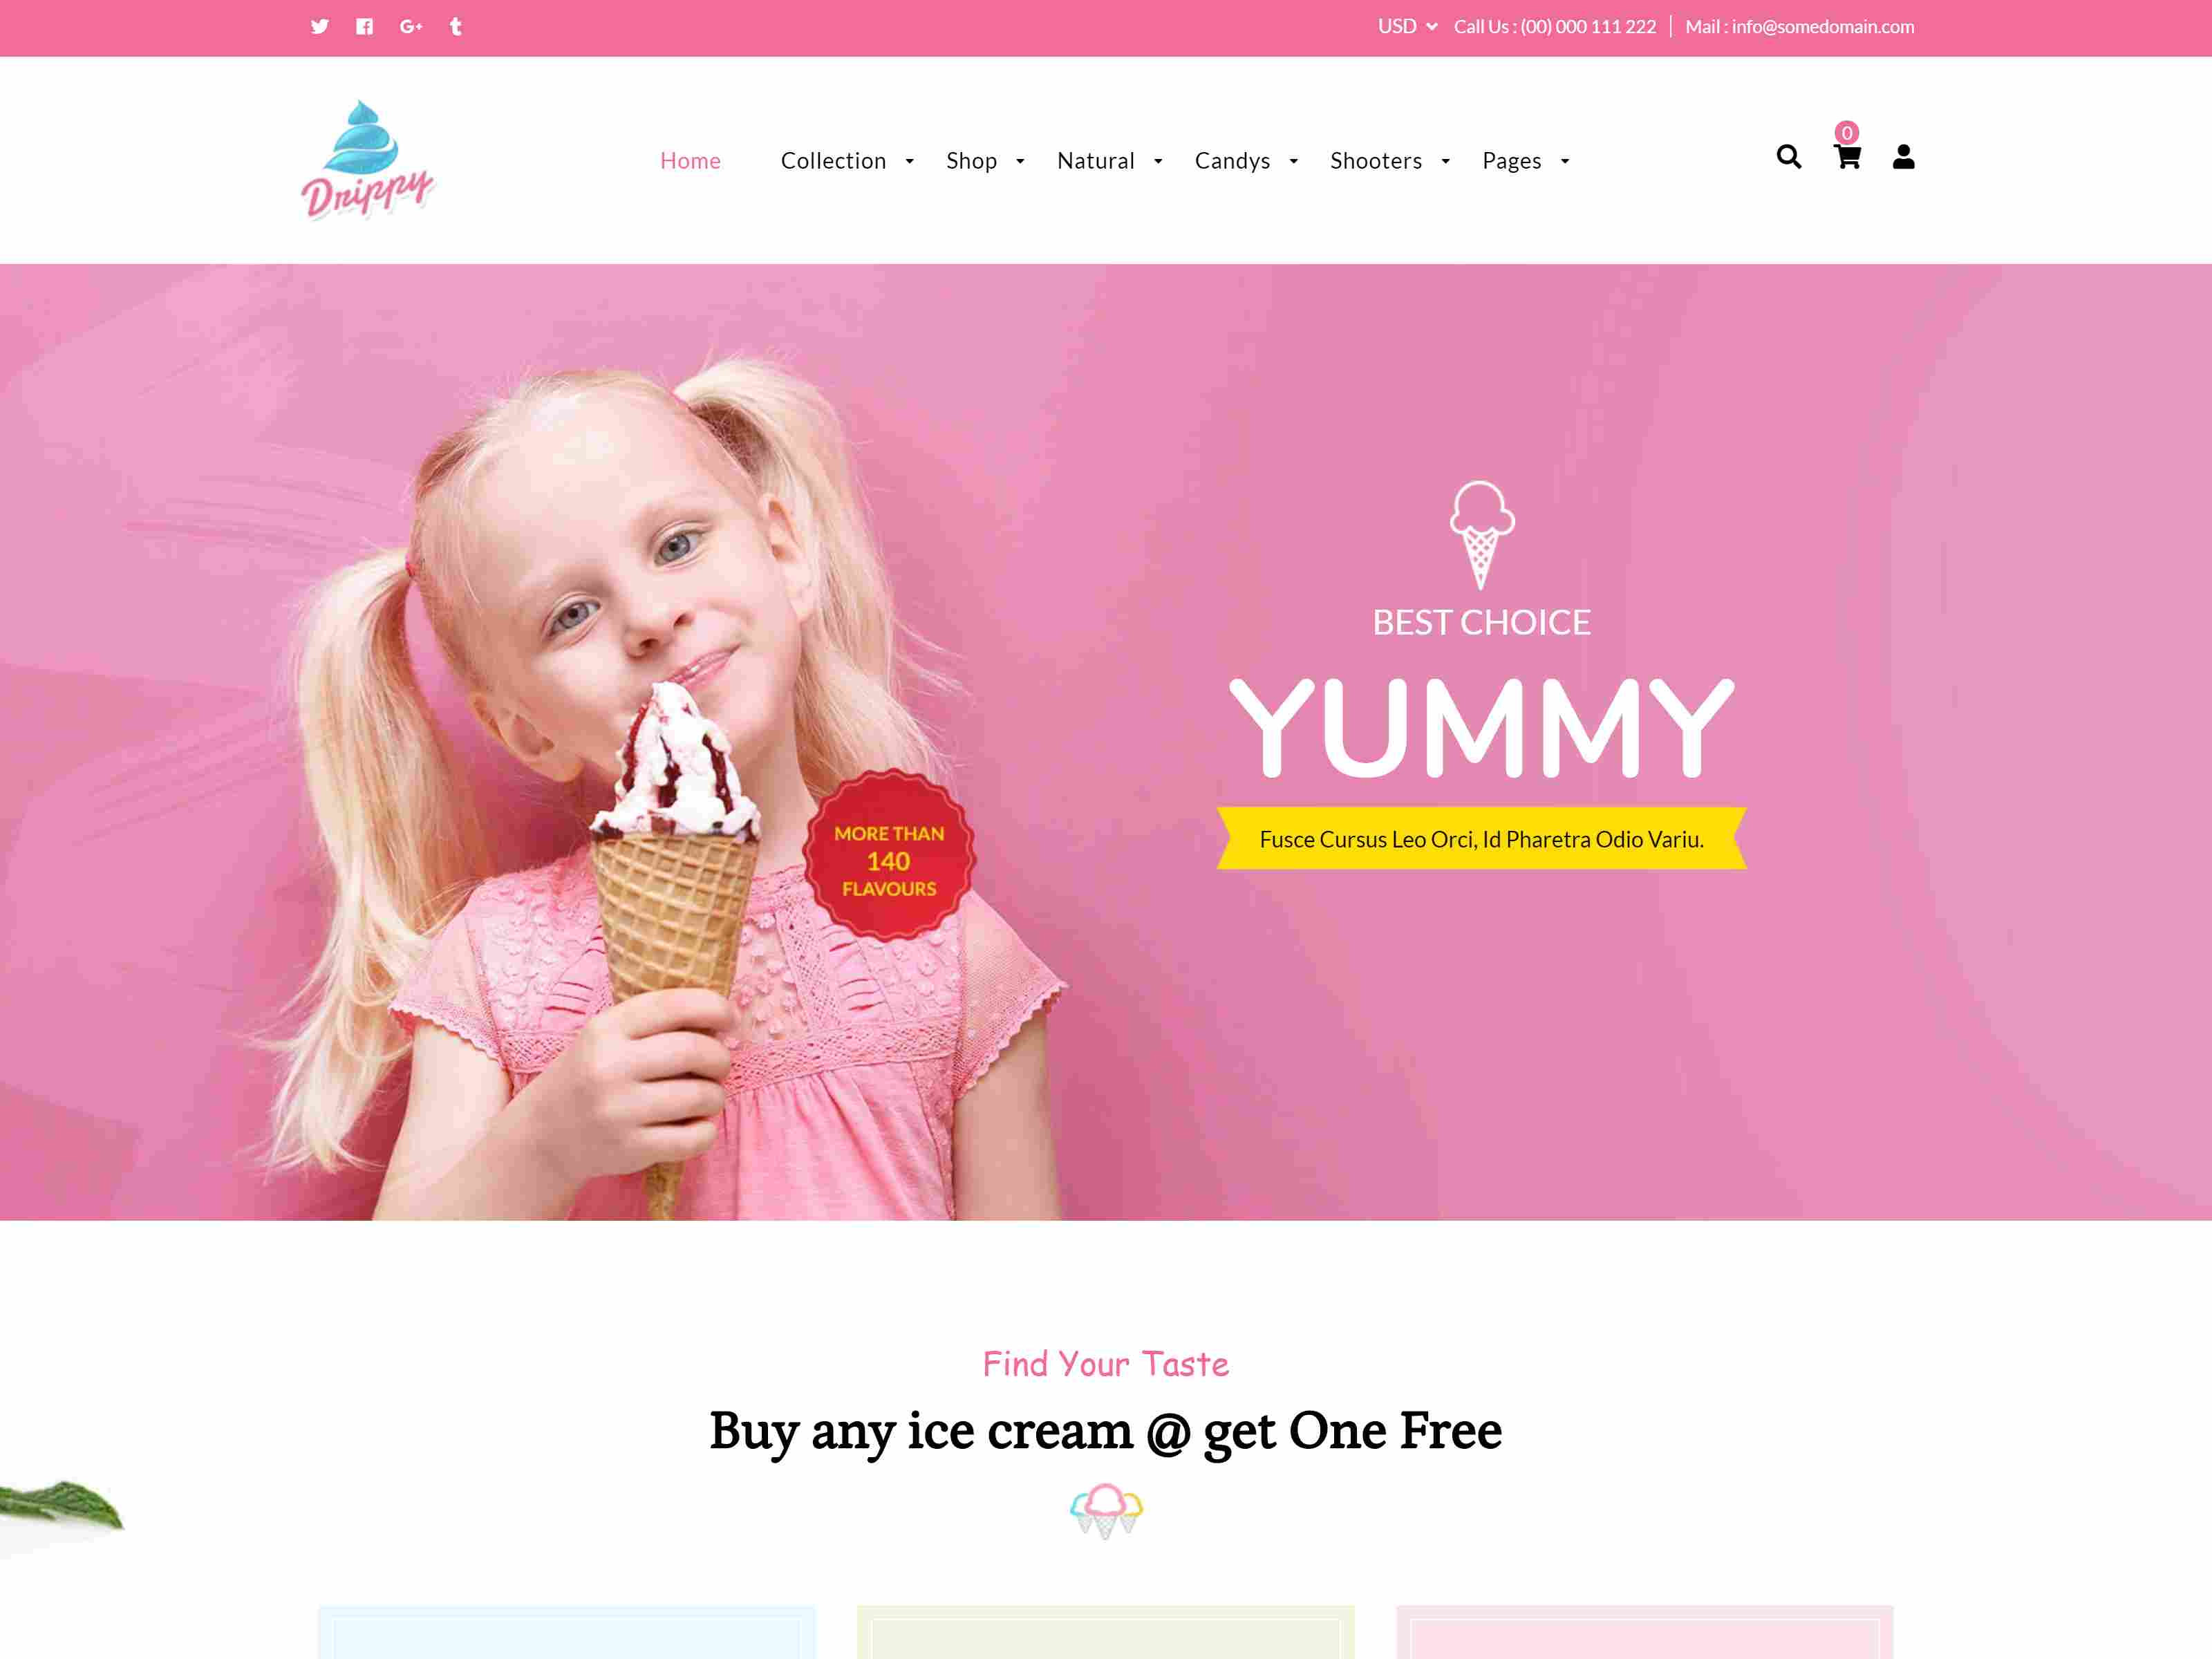 Drippy - Cake Shop, Ice Cream Store Shopify Theme